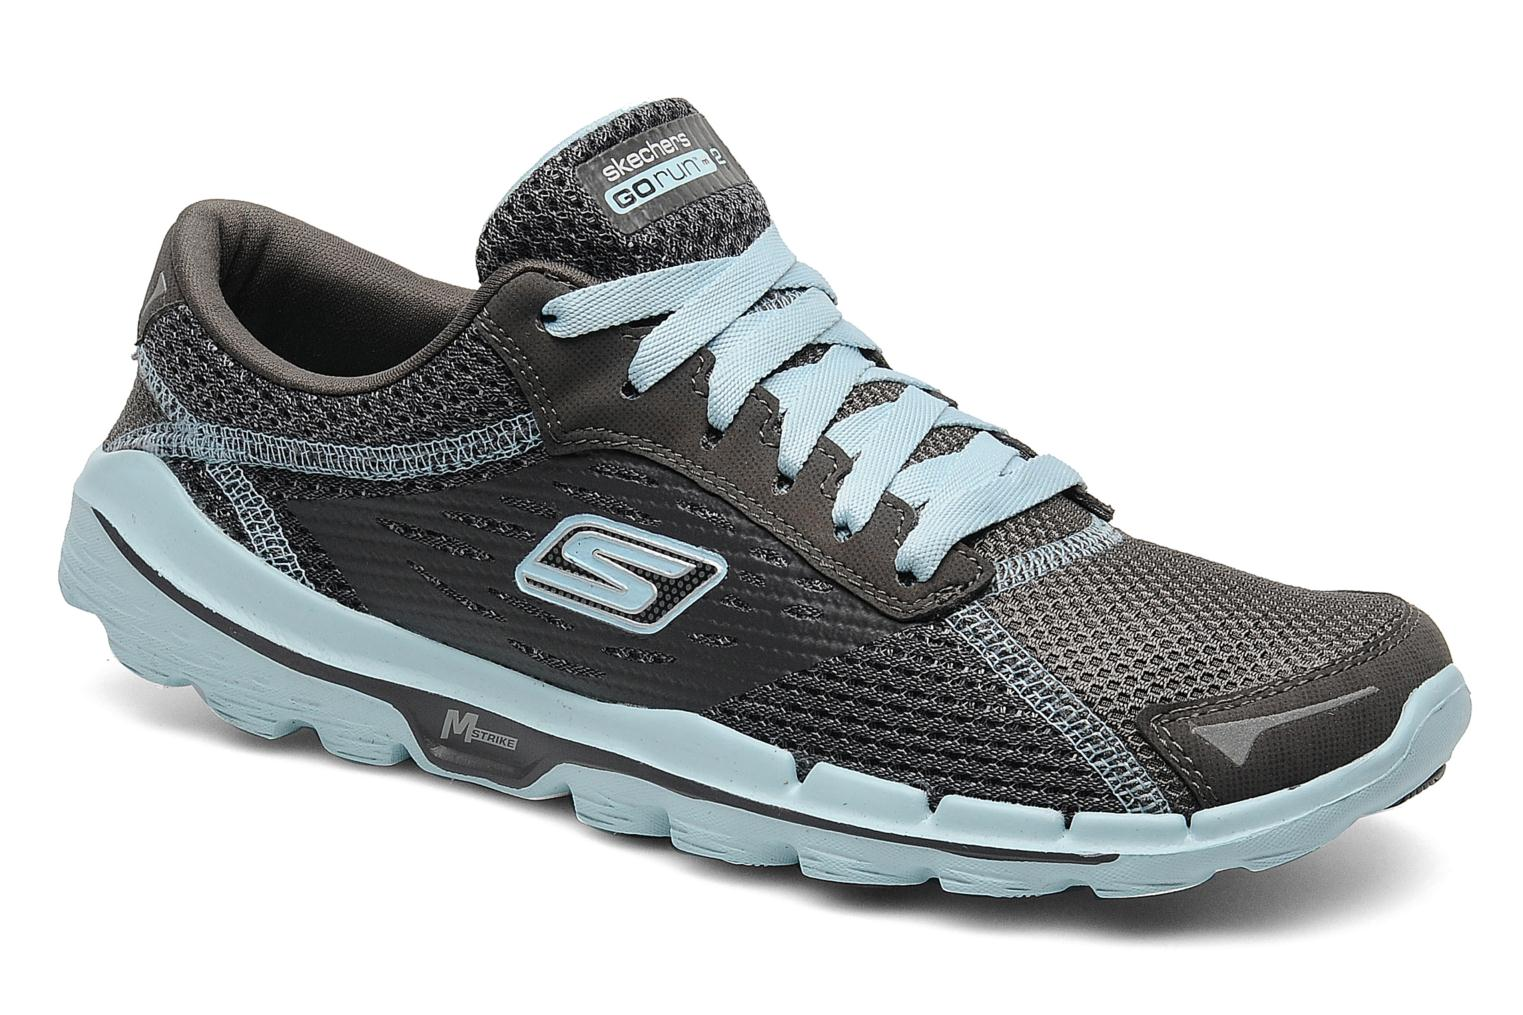 Shop Mens Skechers Performance™ running, golf, walking, training and other athletic shoes are perfect for exercise at the gym or about town. Shop online and pick the right style for you.